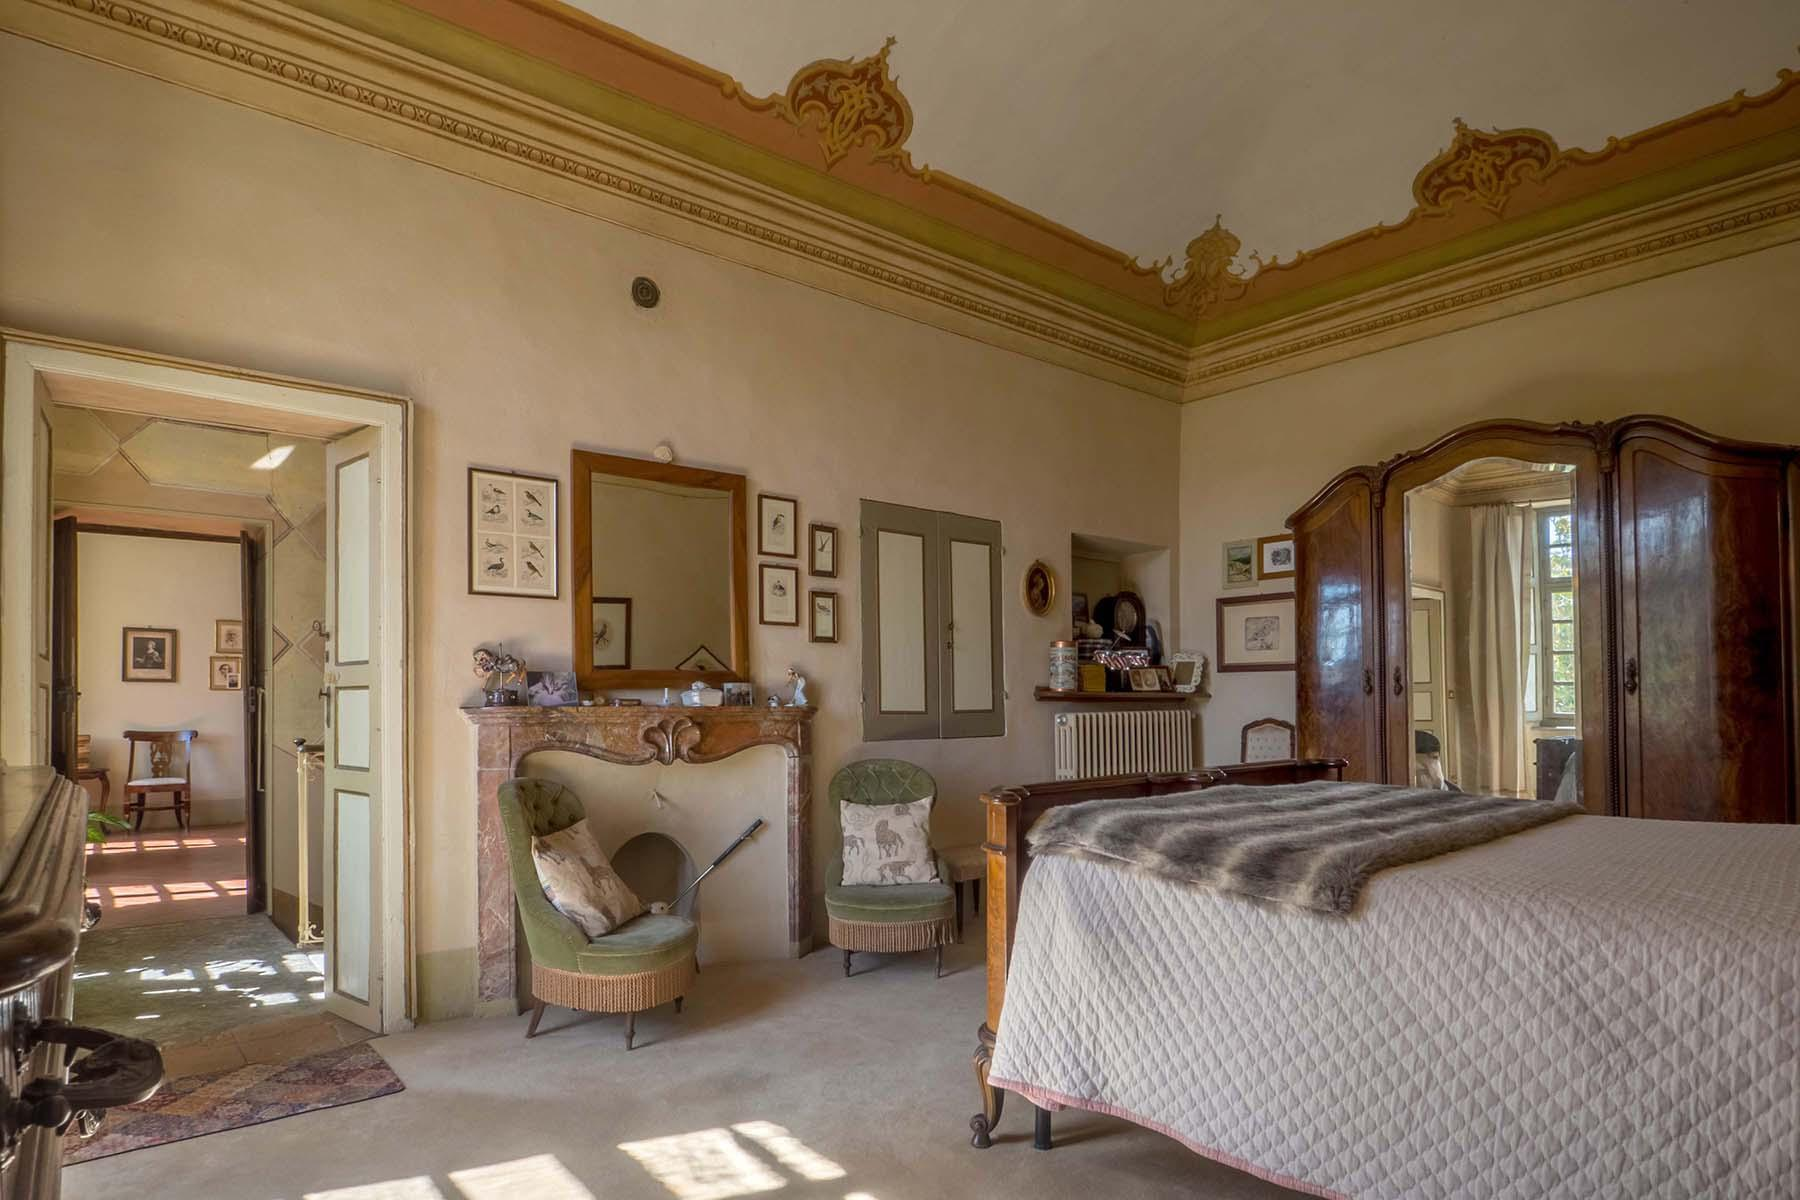 Enchanting historical villa in the heart of the Monferrato region - 9